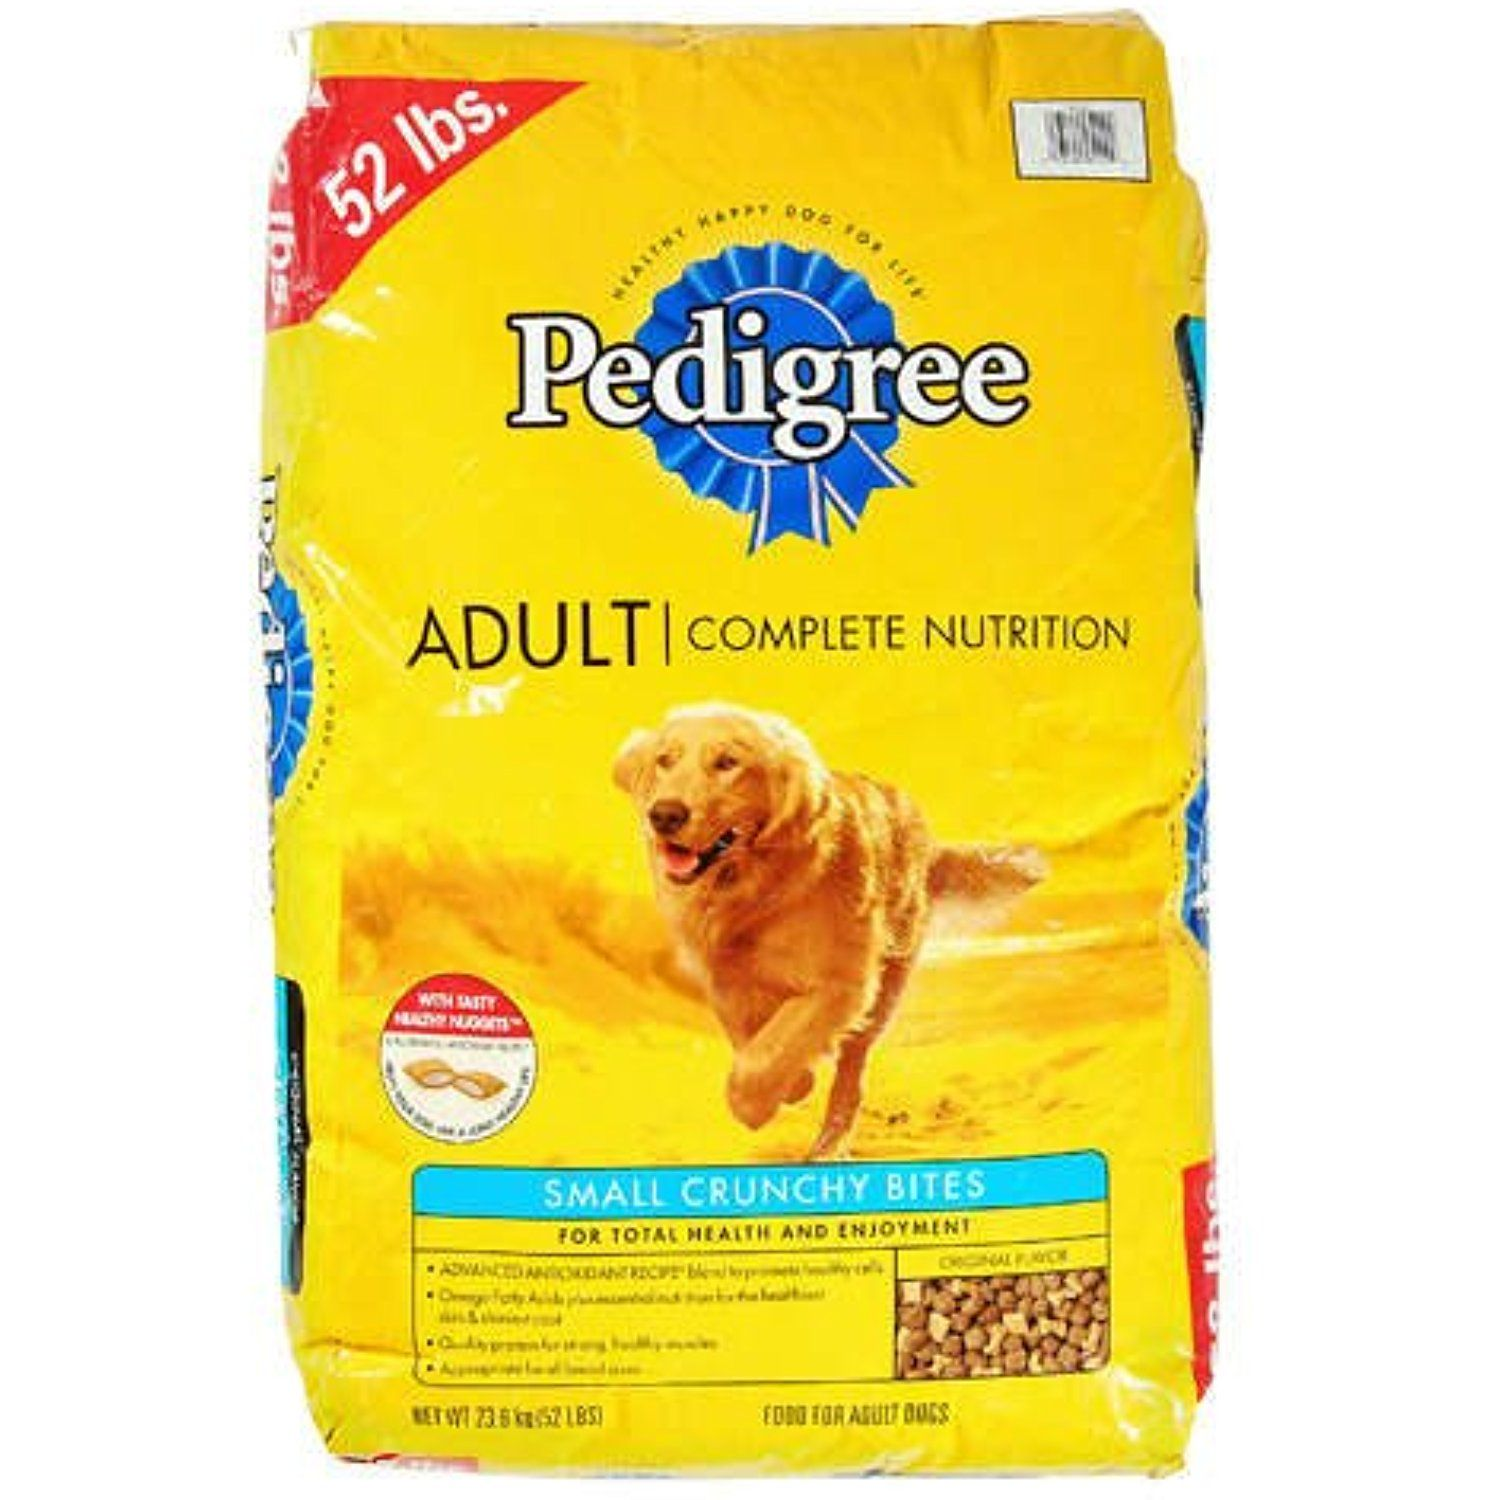 Pedigree Adult Dry Dog Food 52 Lb 2 Pack You Could Find More Details By Visiting The Image Link This I Dog Food Recipes Dry Dog Food Eukanuba Dog Food